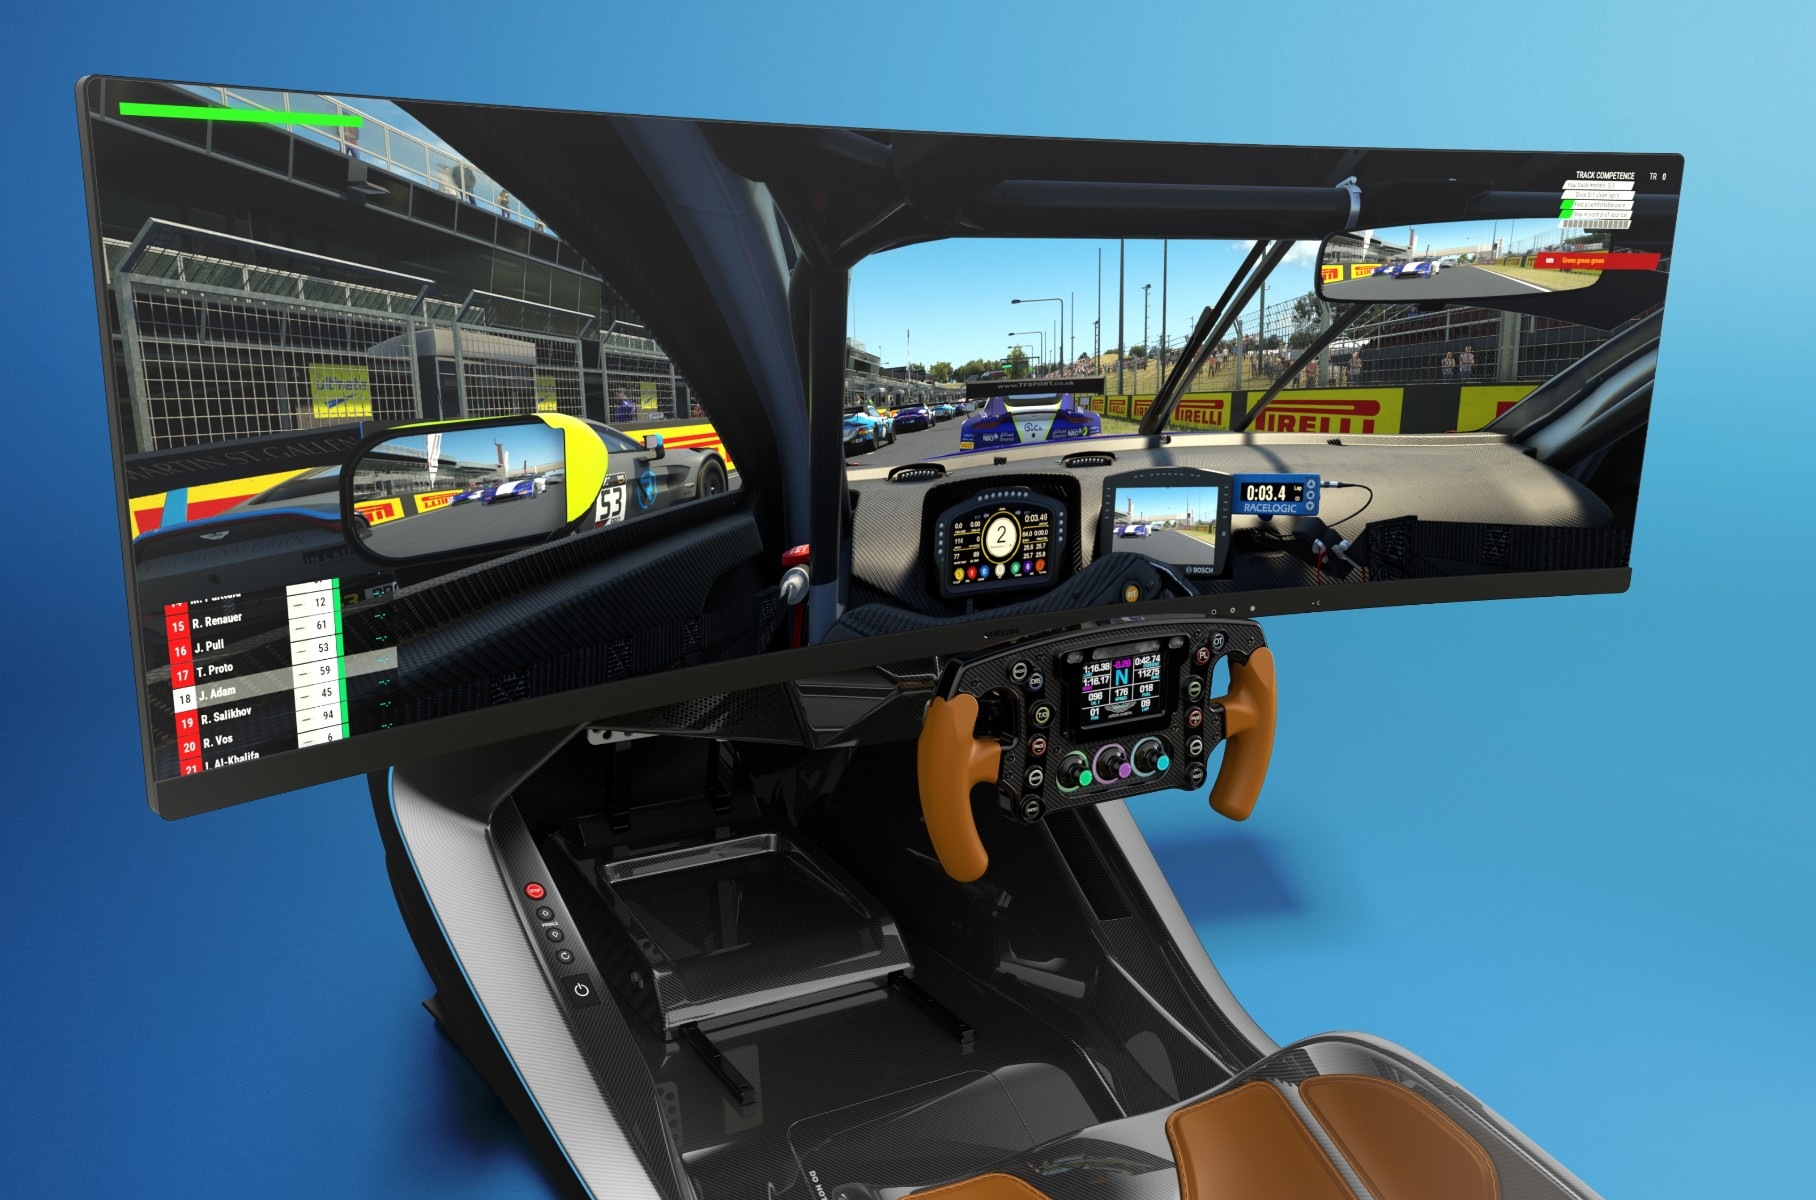 Aston Martin has worked together with Curv Racing Simulators to produce AMR-C01, a cybersports-oriented racing simulator machine with impressive specs and pricing.